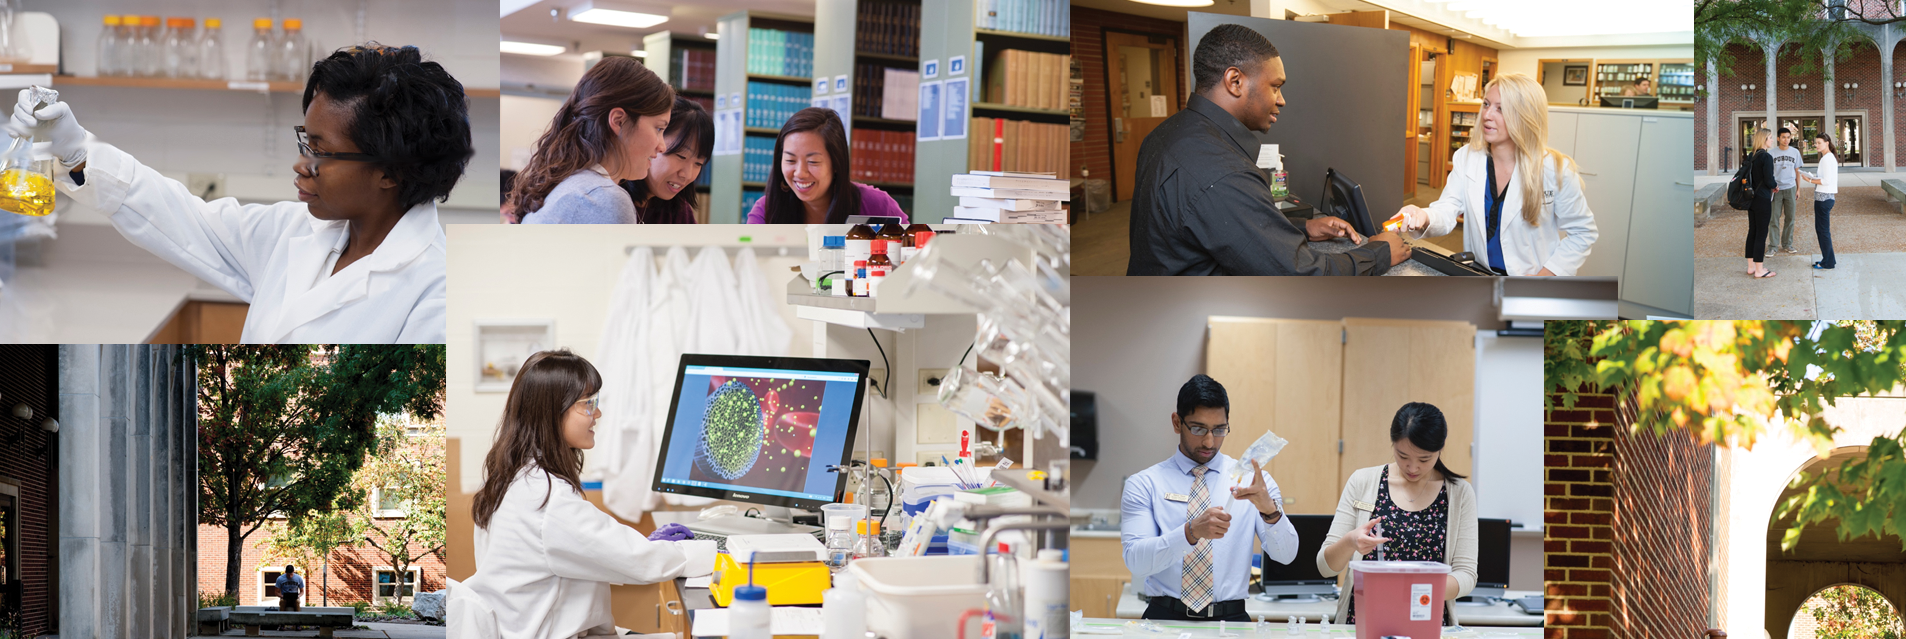 Montage of graduate students